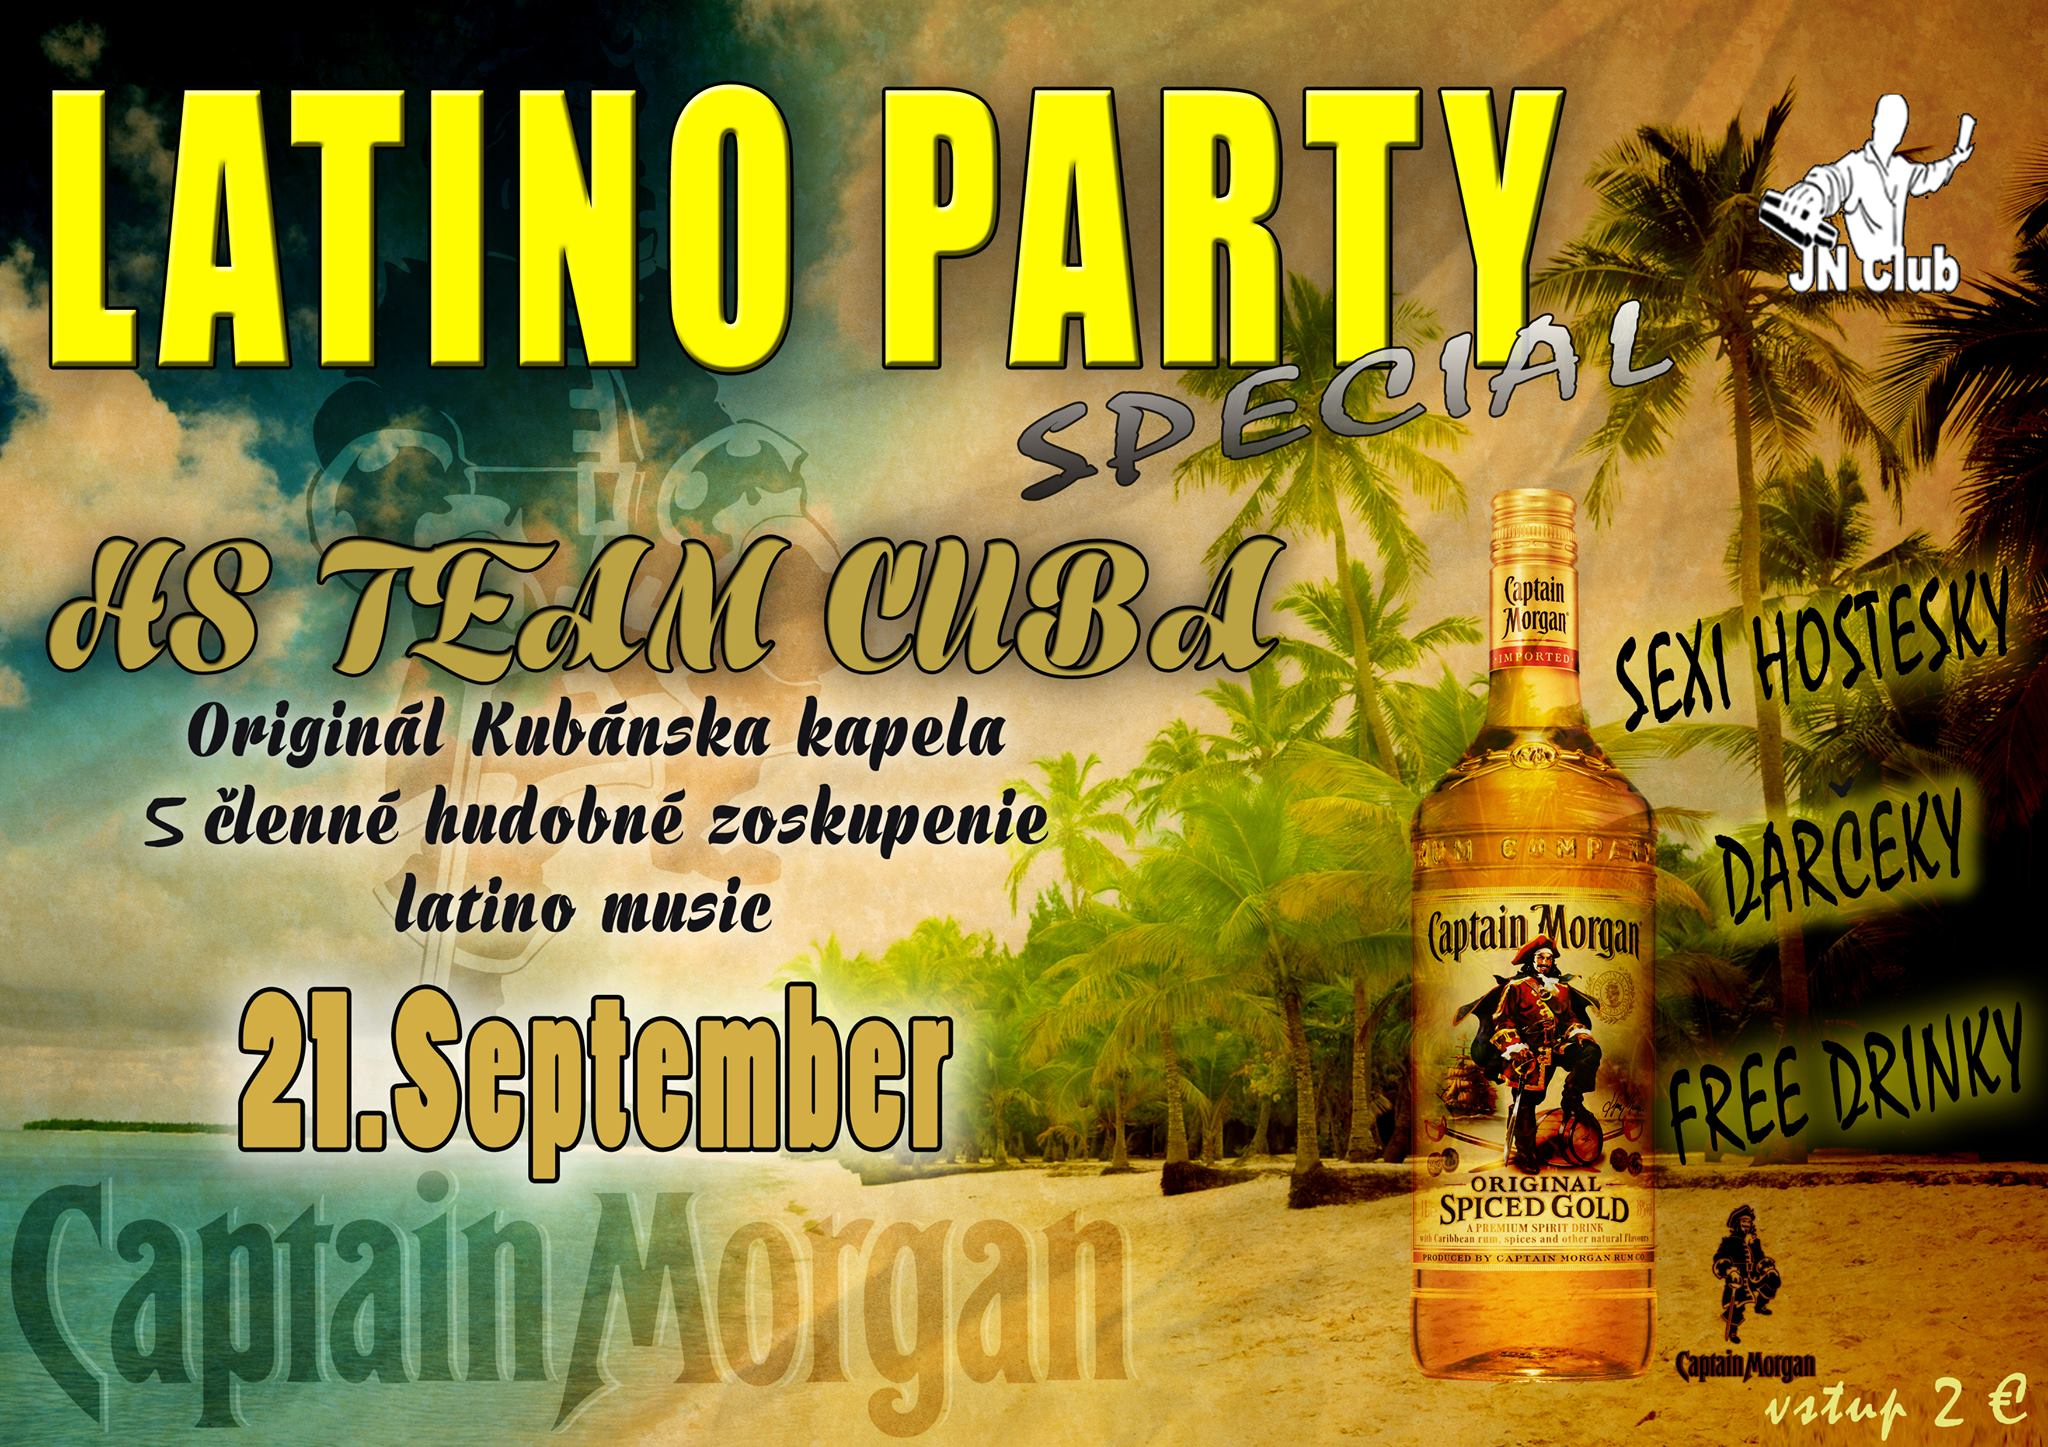 LATINO PARTY special HS TEAM CUBA